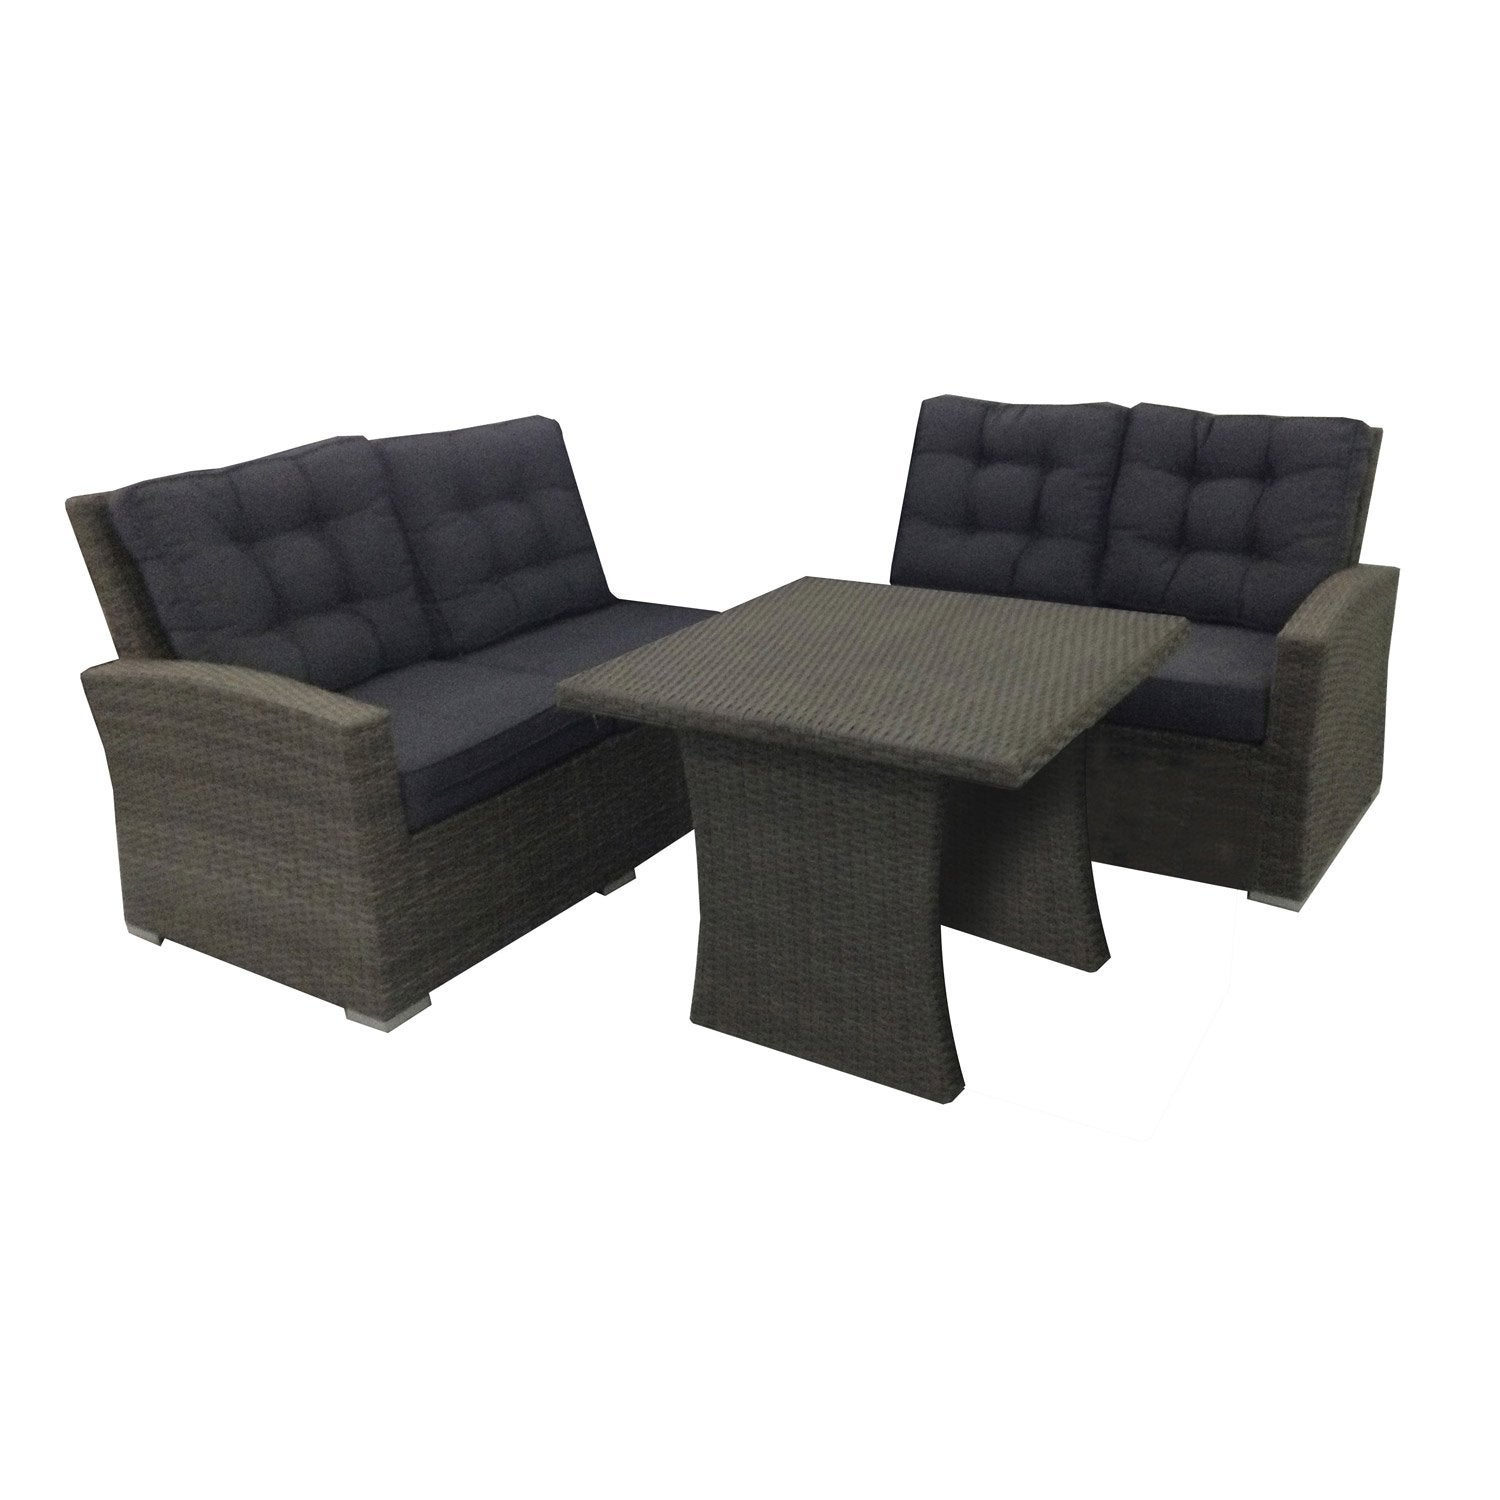 canap et table pour salon de jardin daveport leroy merlin. Black Bedroom Furniture Sets. Home Design Ideas